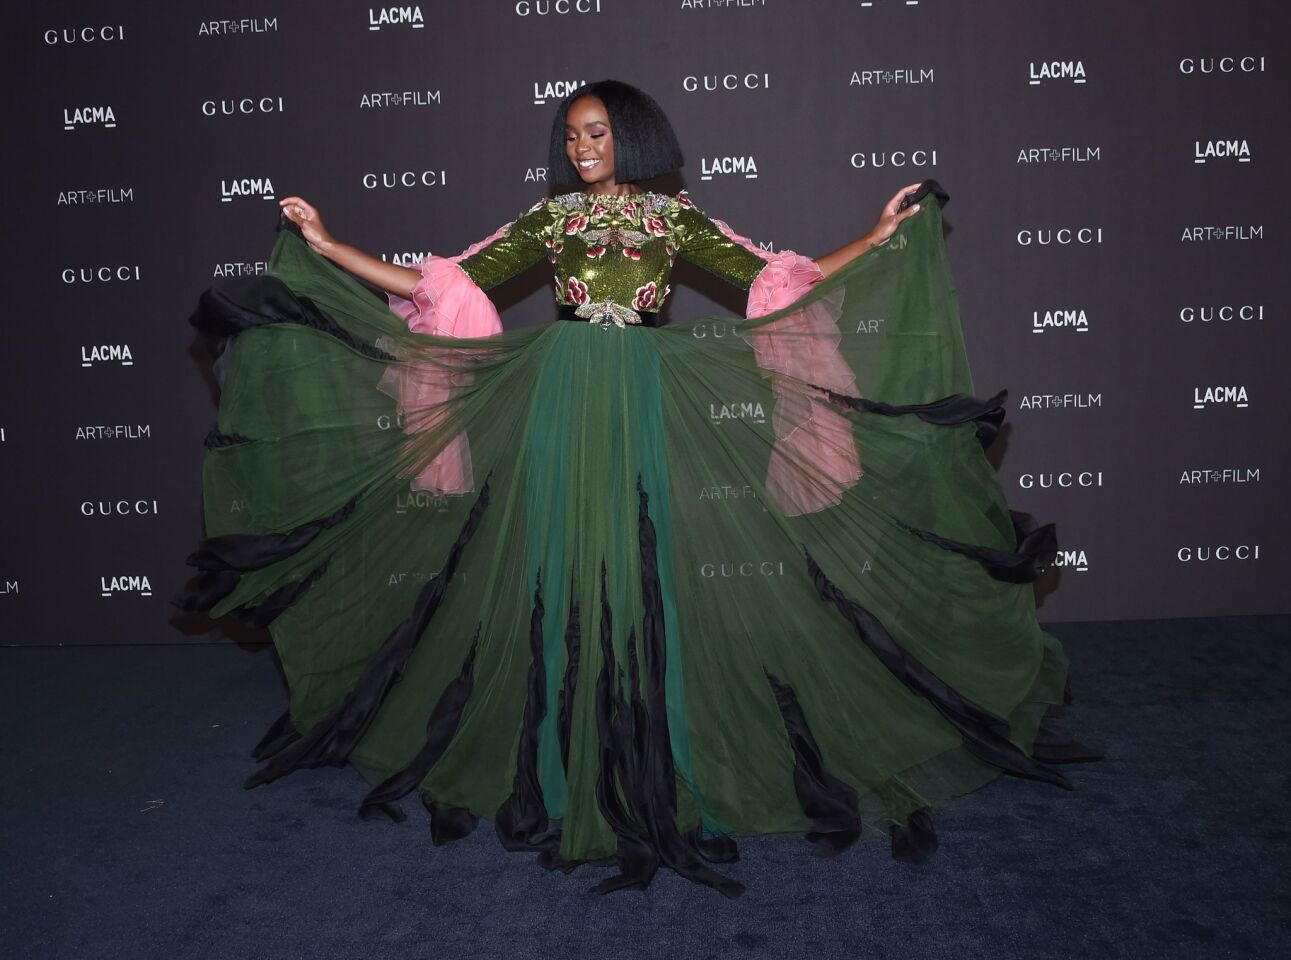 Actress Kiki Layne shows off her gown at the 2018 LACMA Art+Film Gala in Los Angeles.